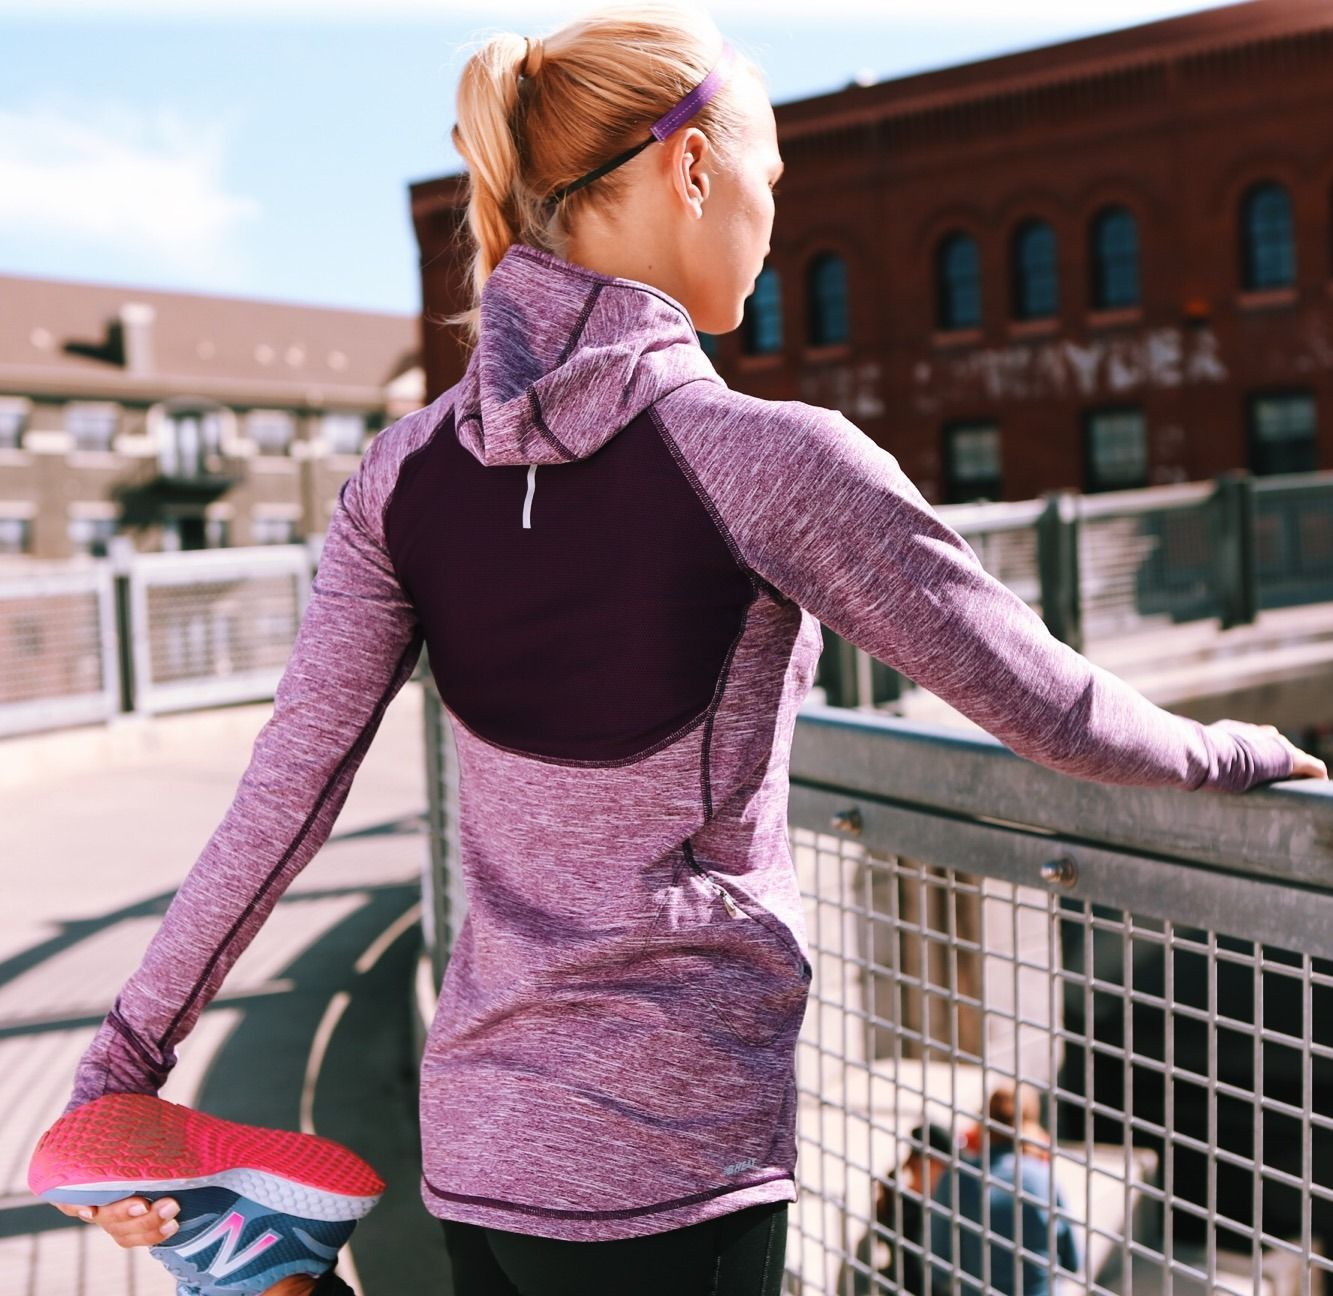 Lima grua Premedicación  NB Heat Hoodie, Impact Tight, Fresh Foam Zante] Outsmart the cold and enjoy  your run with these essentials.   Heated hoodie, Hoodies, New balance